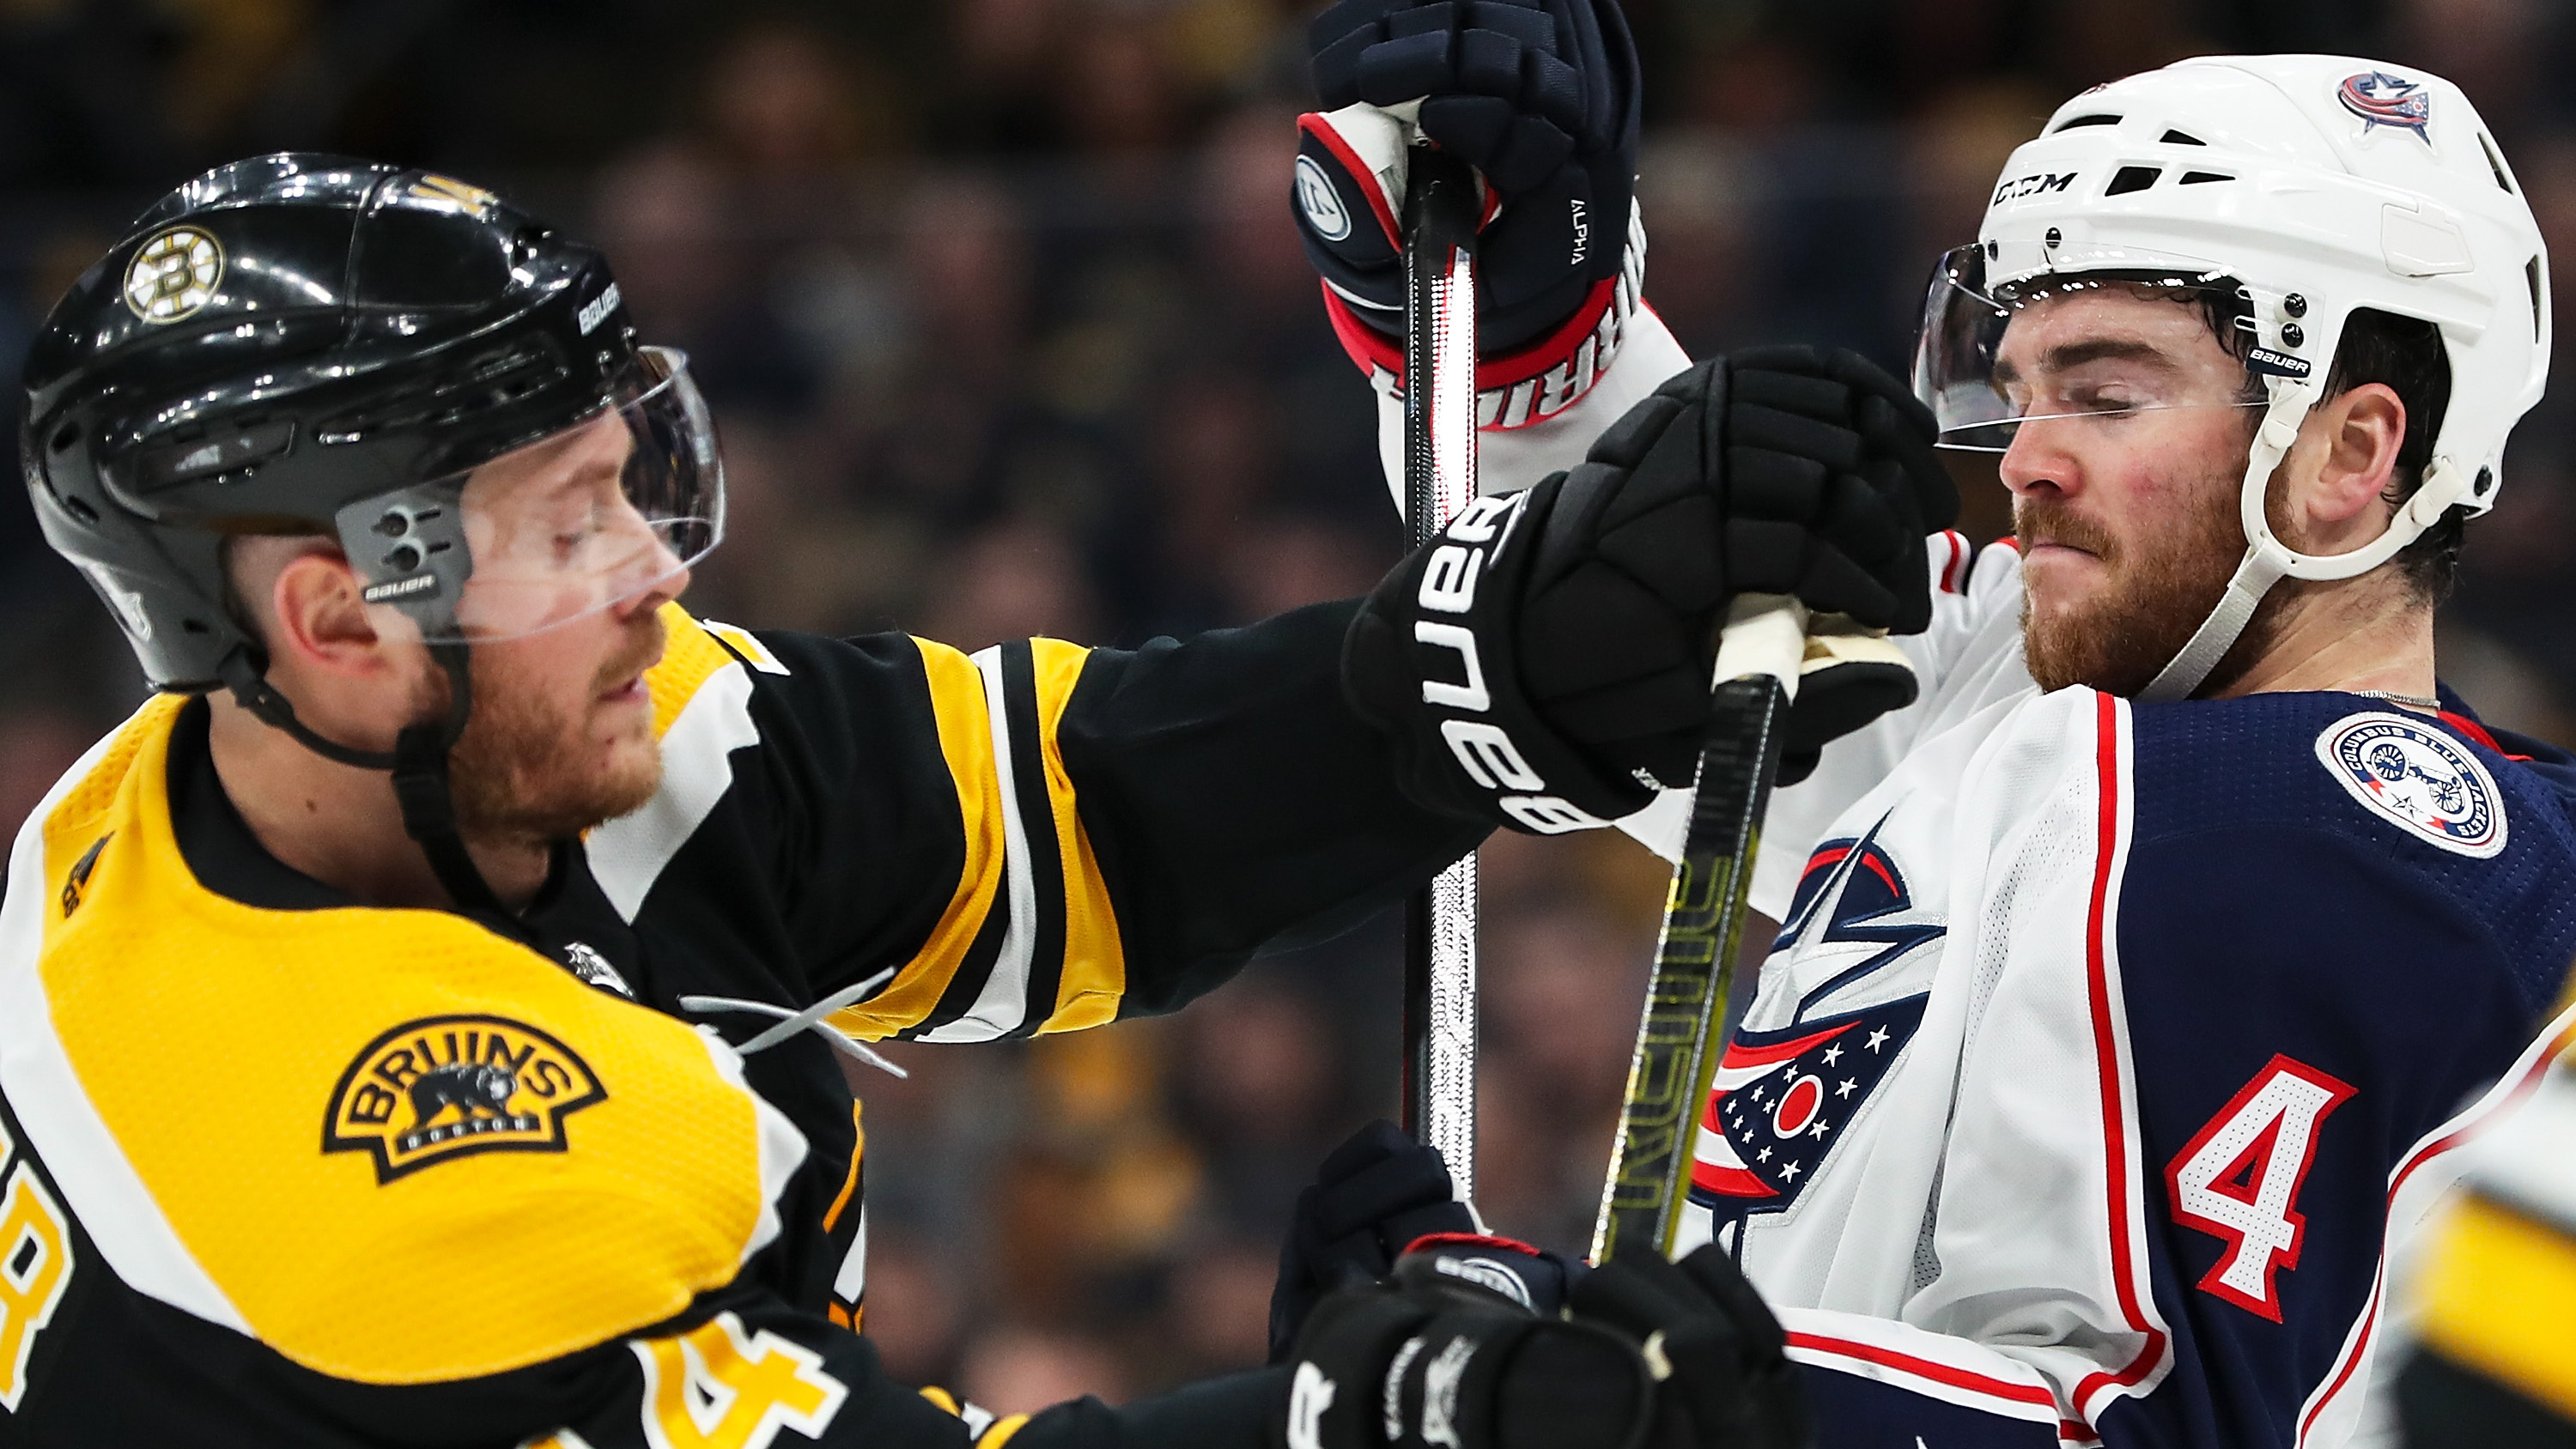 Blue Jackets show physicality in Game 1 loss vs. Bruins